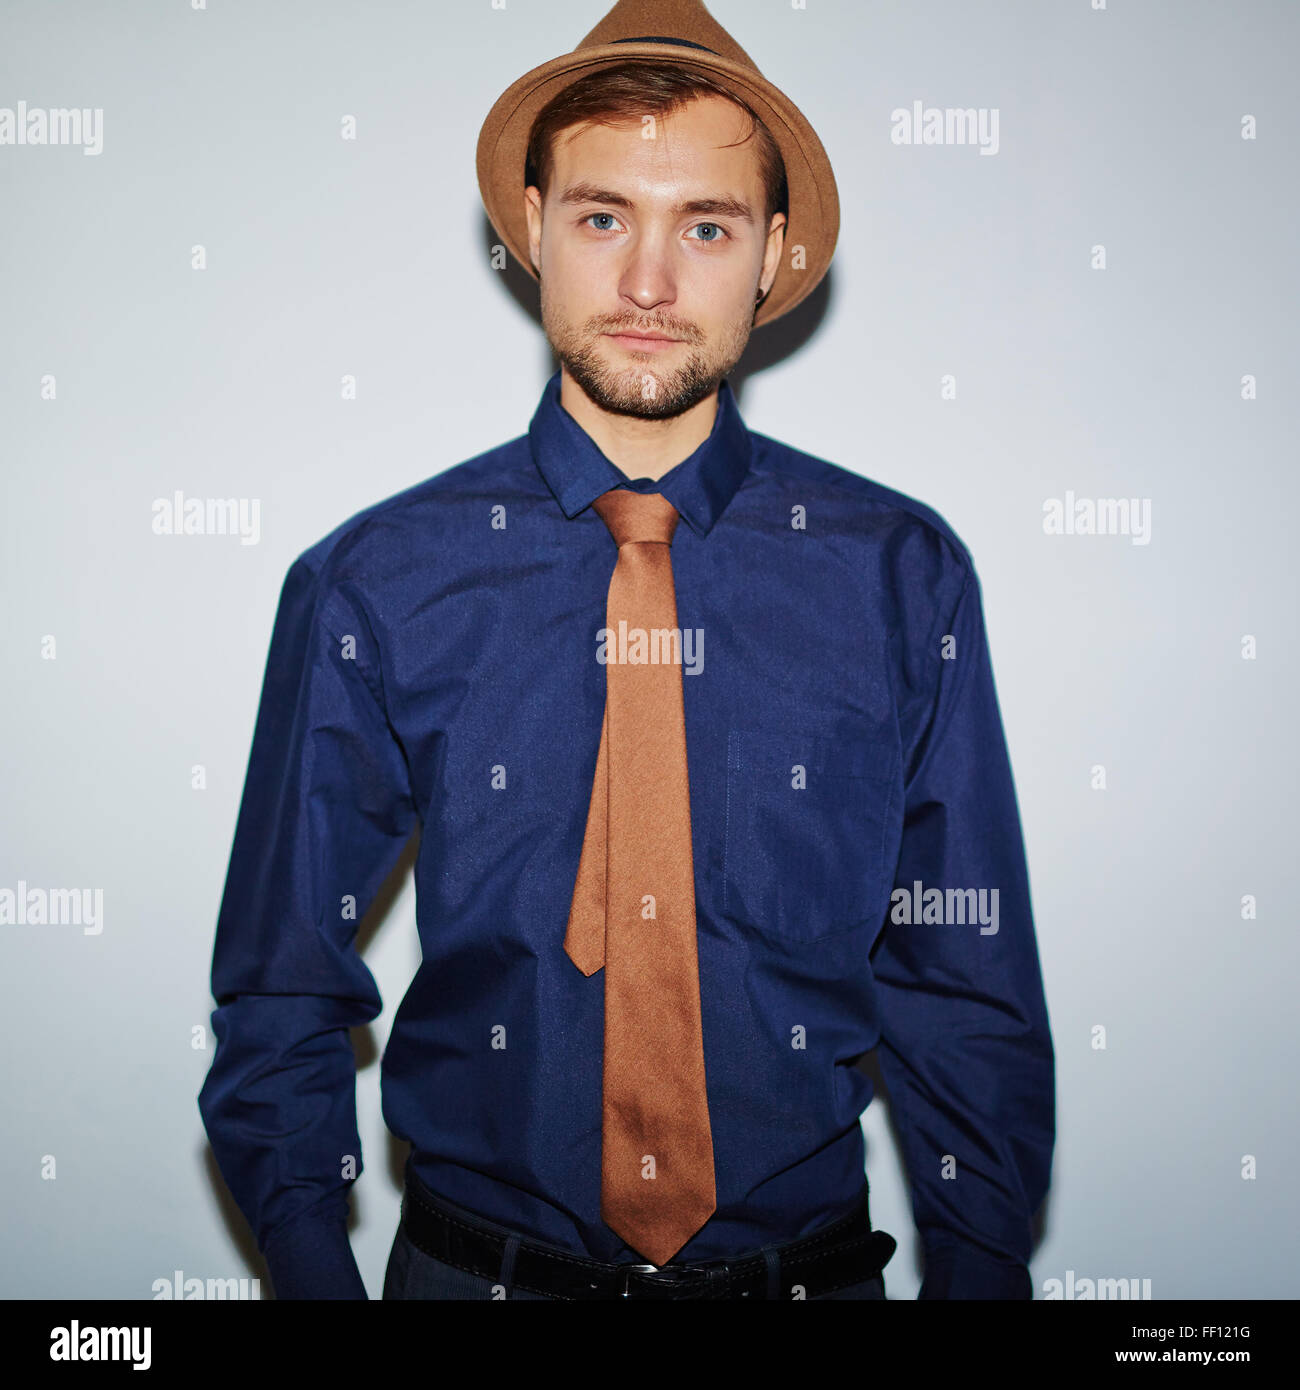 Serious well-dressed guy looking at camera - Stock Image